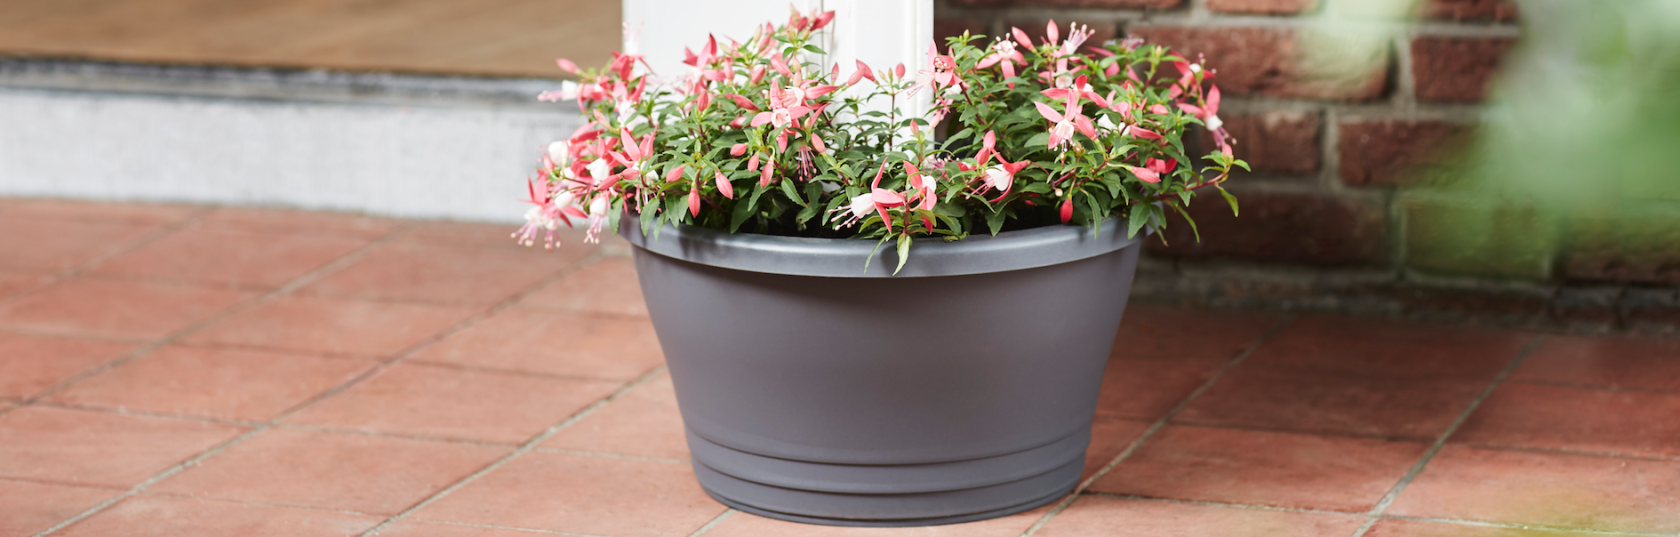 Planters As A Solution: Smart Tips For Outdoors